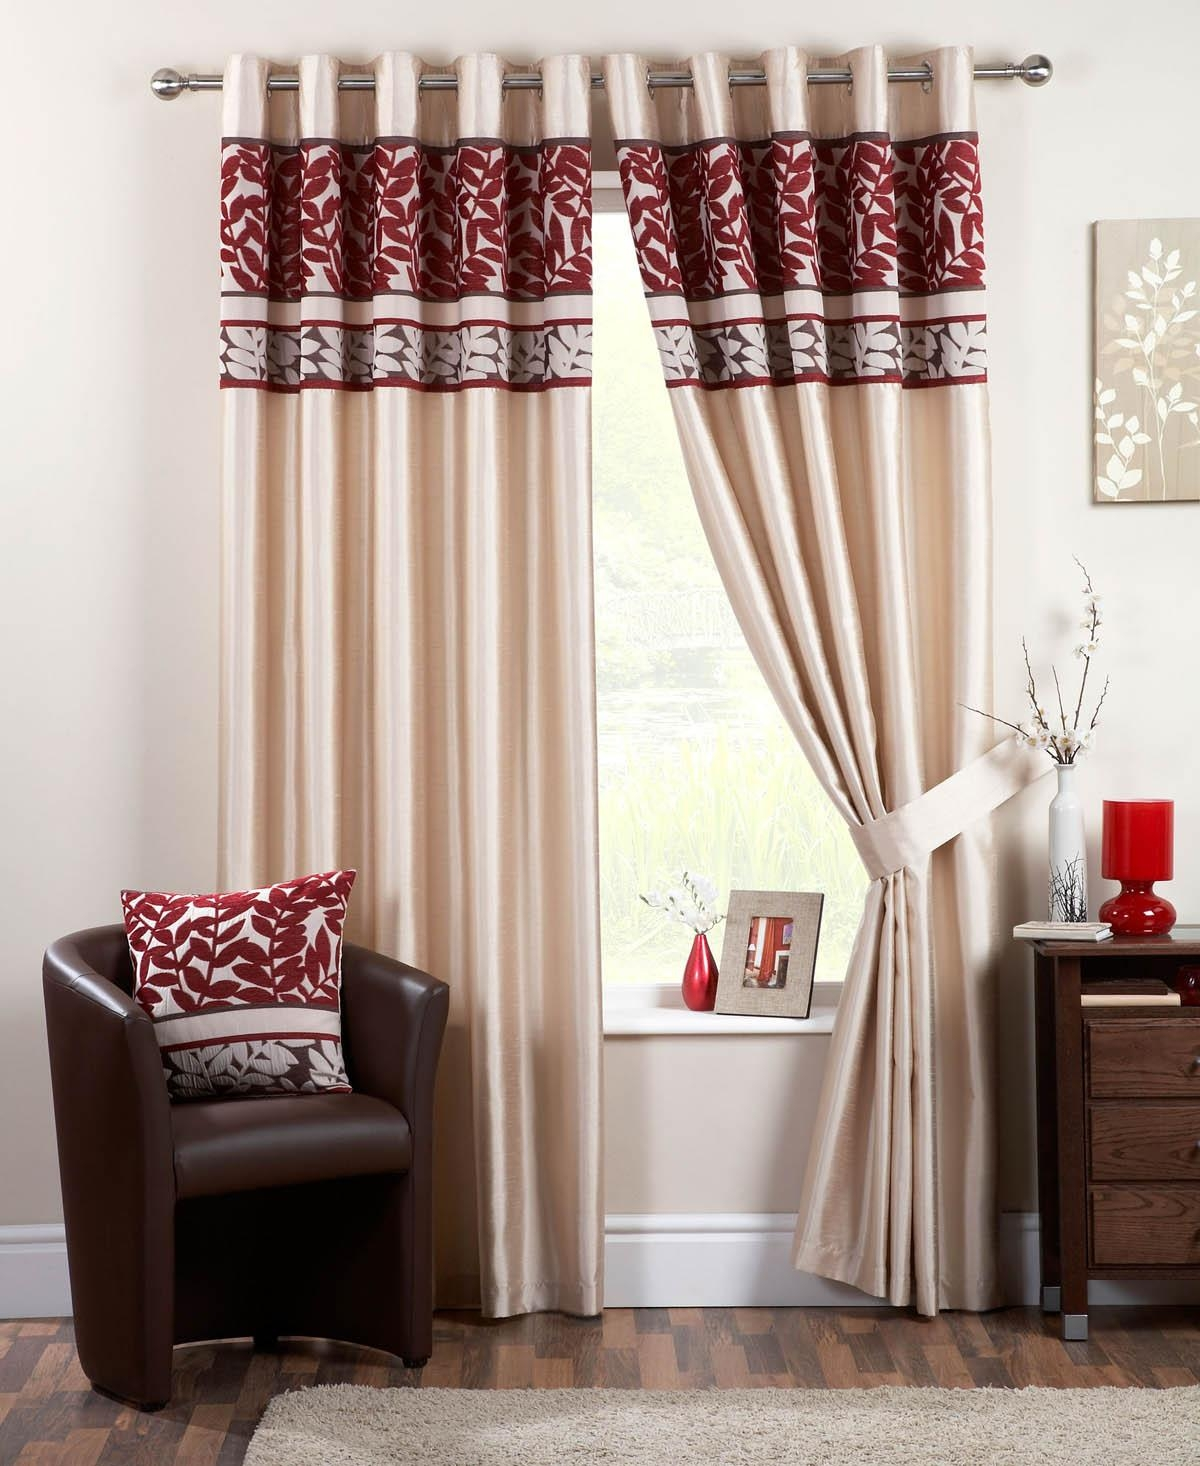 Coniston Eyelet Lined Curtains Red Free Uk Delivery Terrys Fabrics With Regard To Double Lined Curtains (Image 3 of 15)